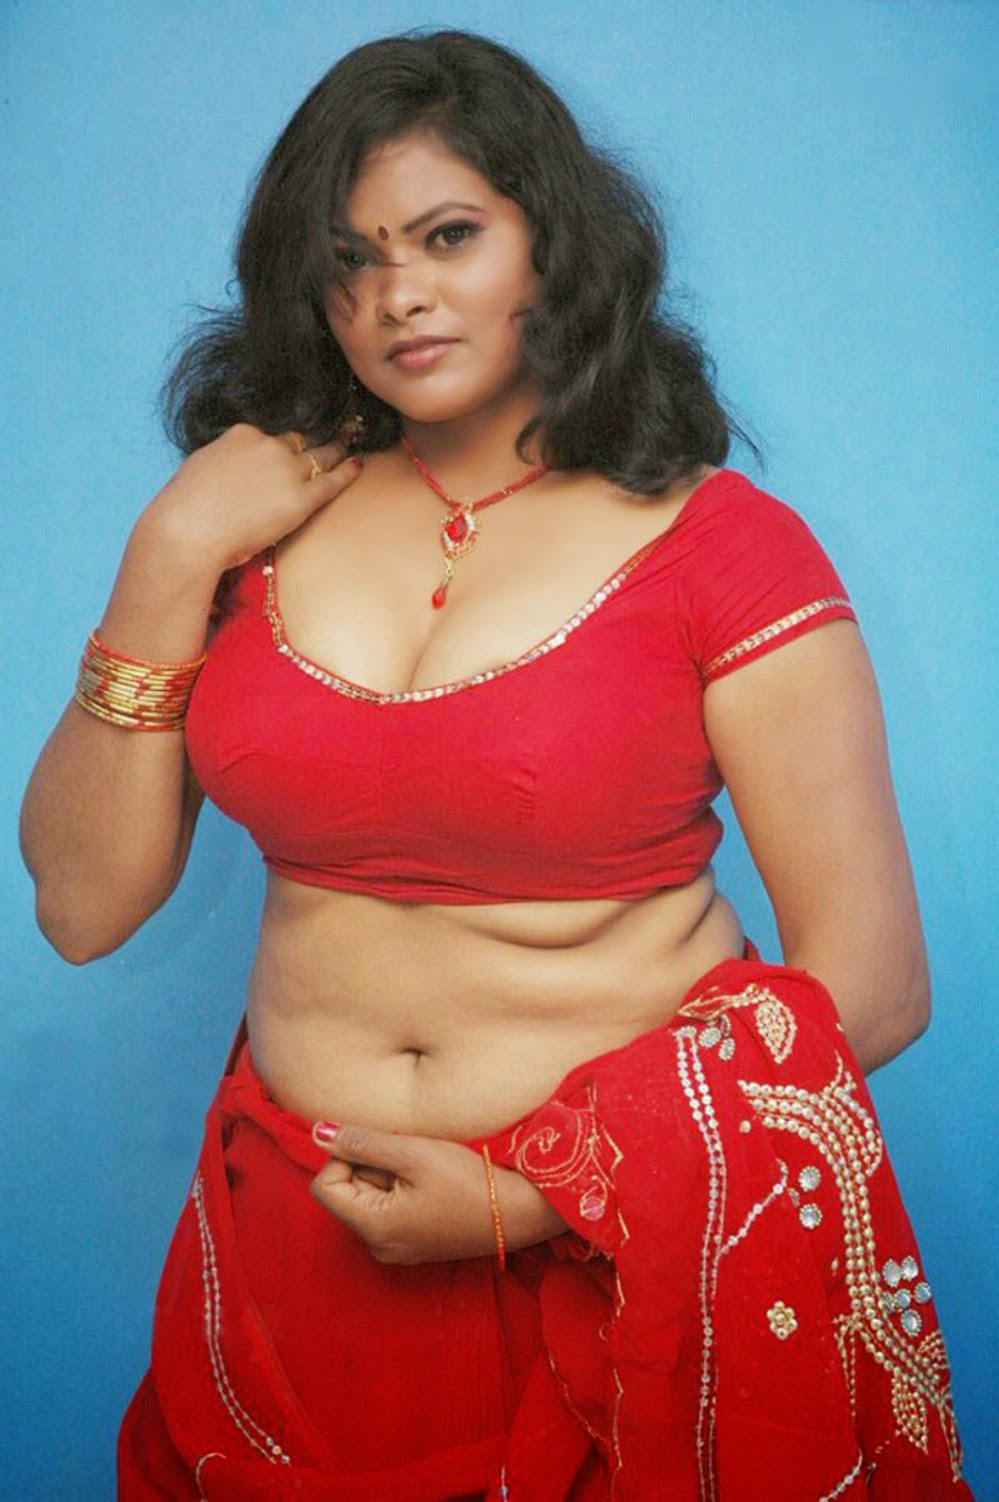 Unsatisifed Cheating House Wife Kerala Busty Aunty Actress -5736